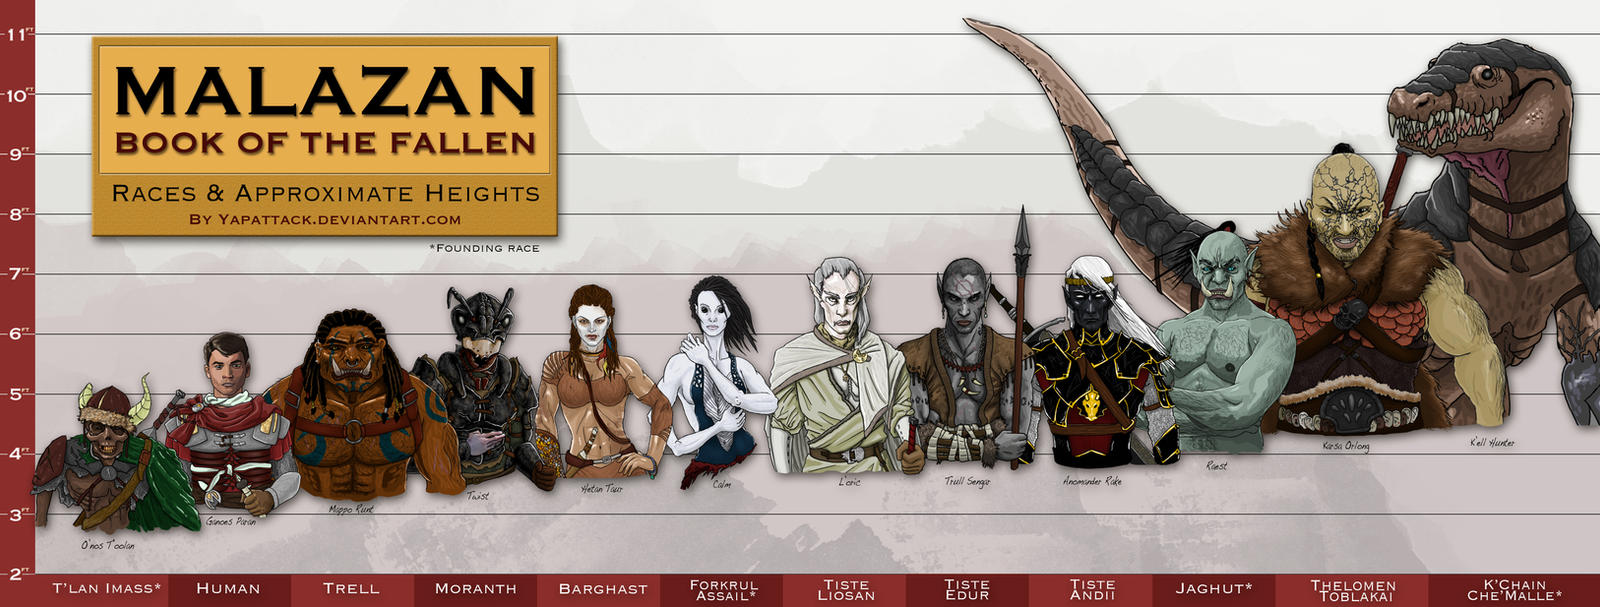 Malazan Races and Approximate Heights